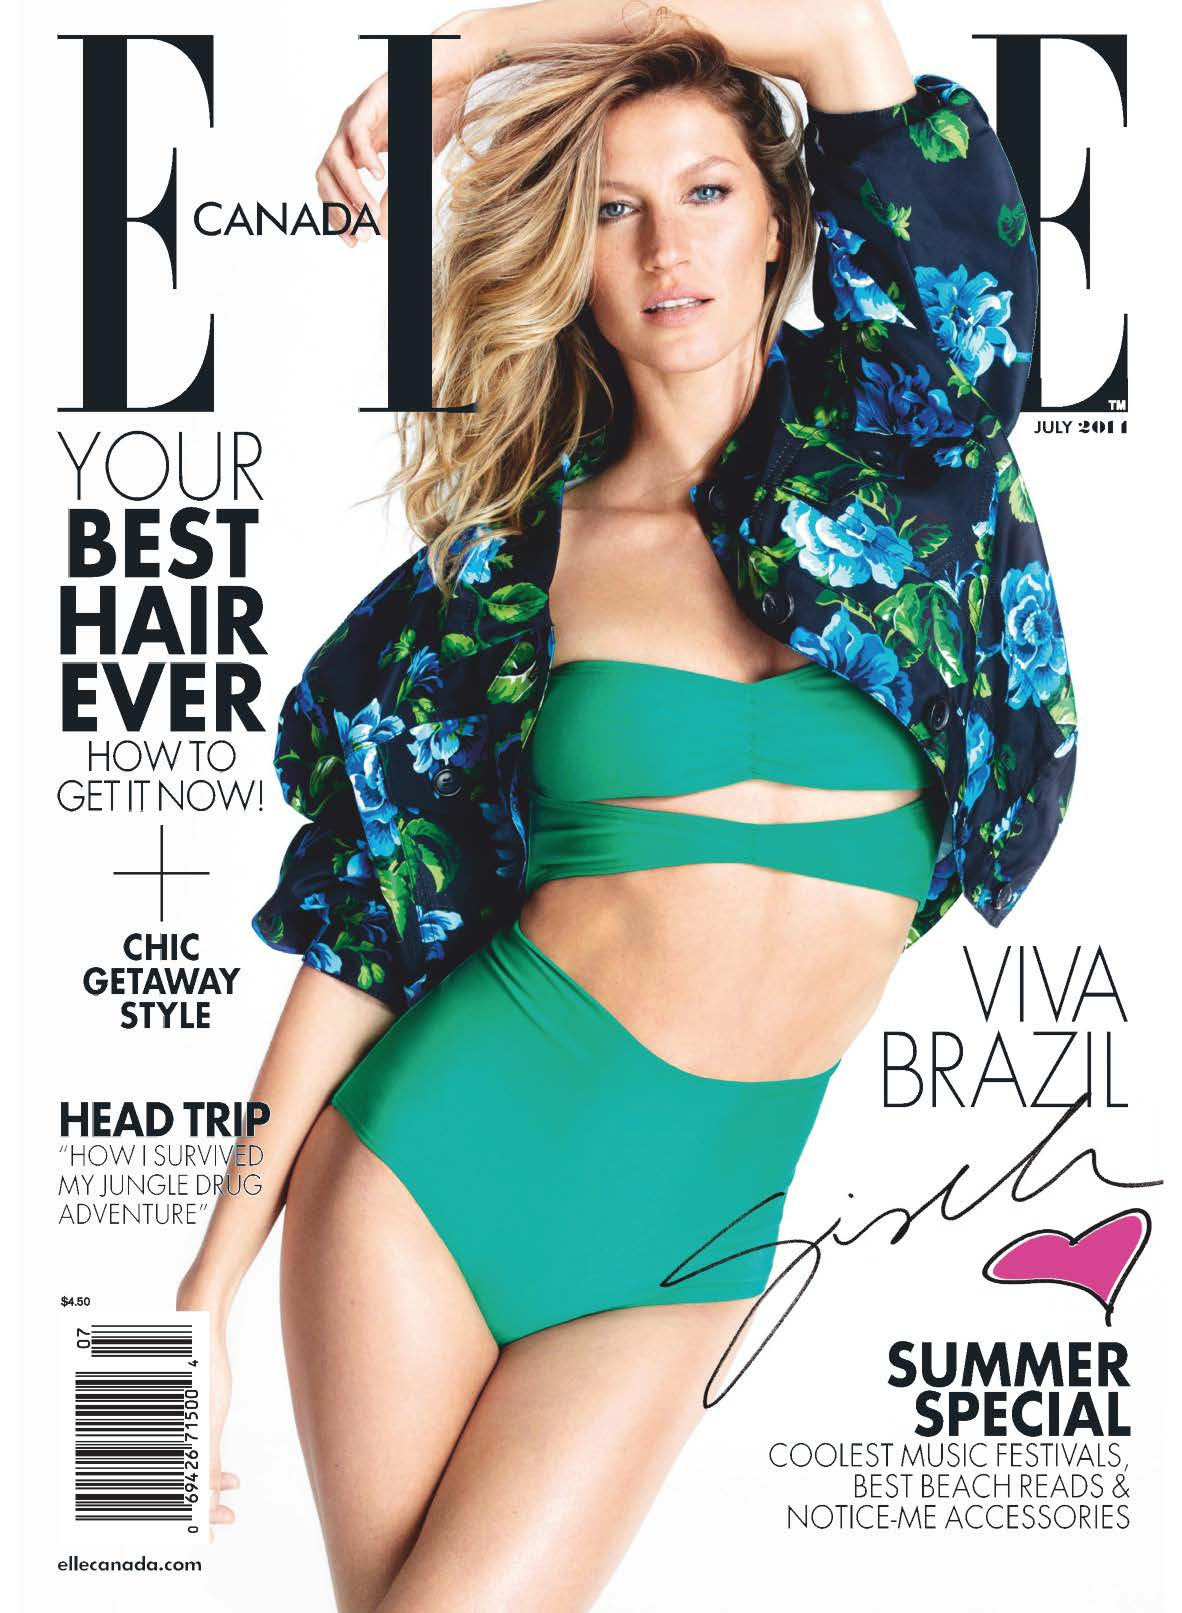 gisele-bc3bcndchen-covers-elle-canada-july-2014-1